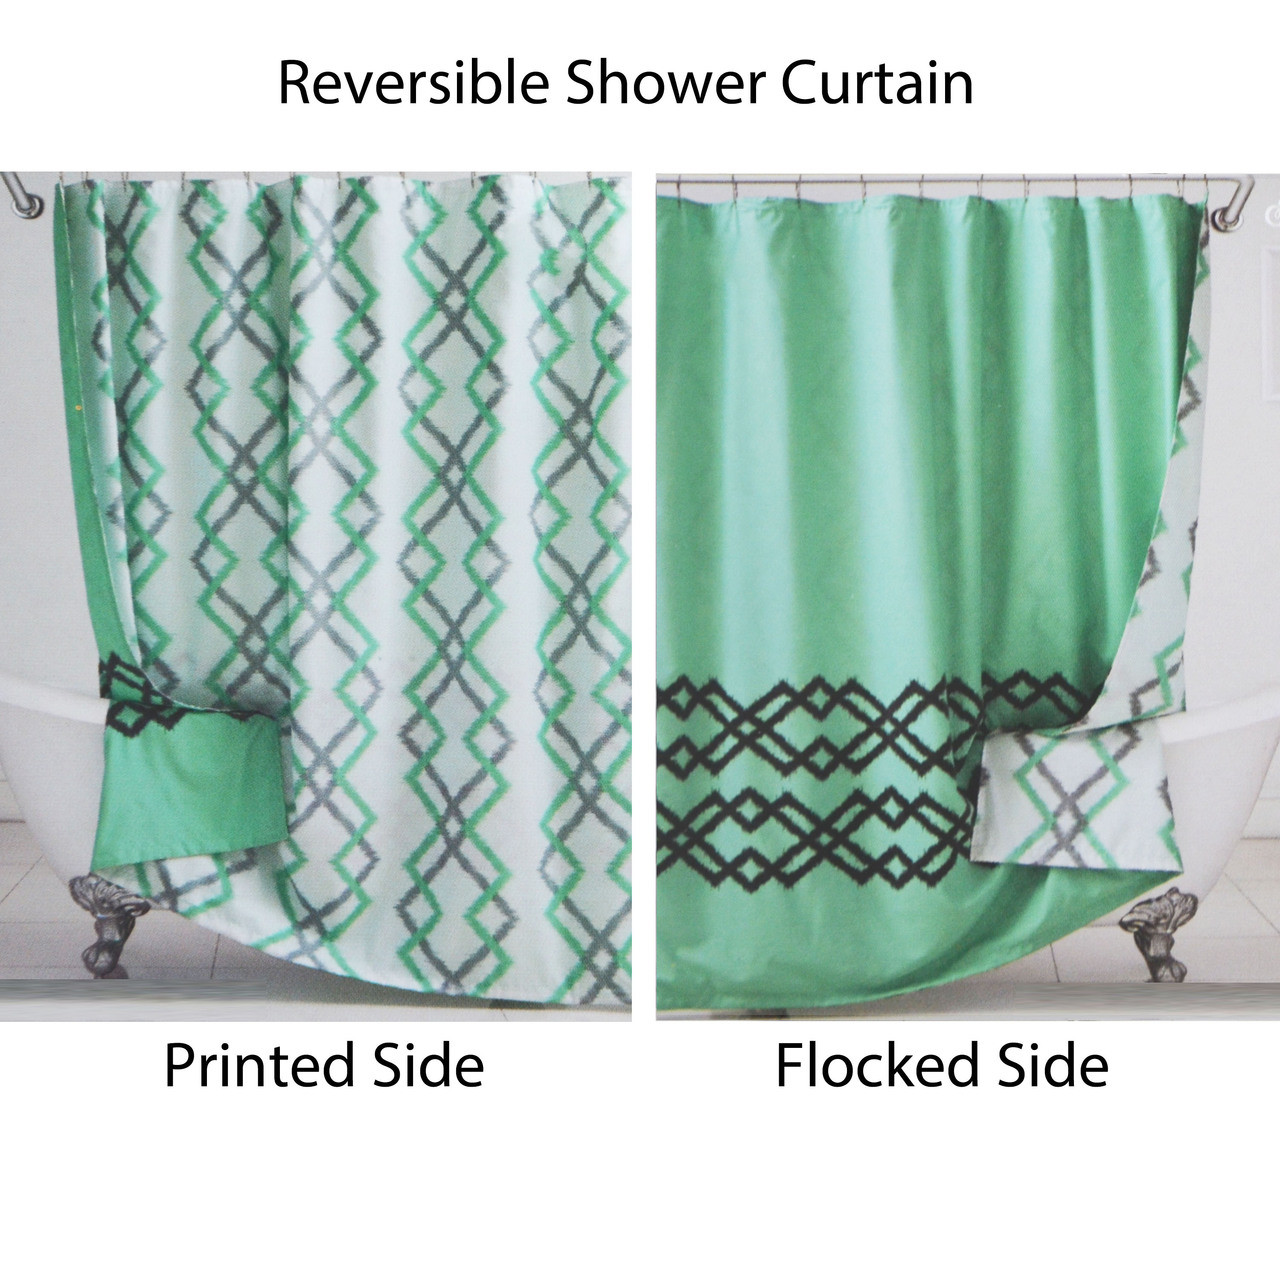 Reversible Fabric Shower Curtain Green White Gray Ikat Design